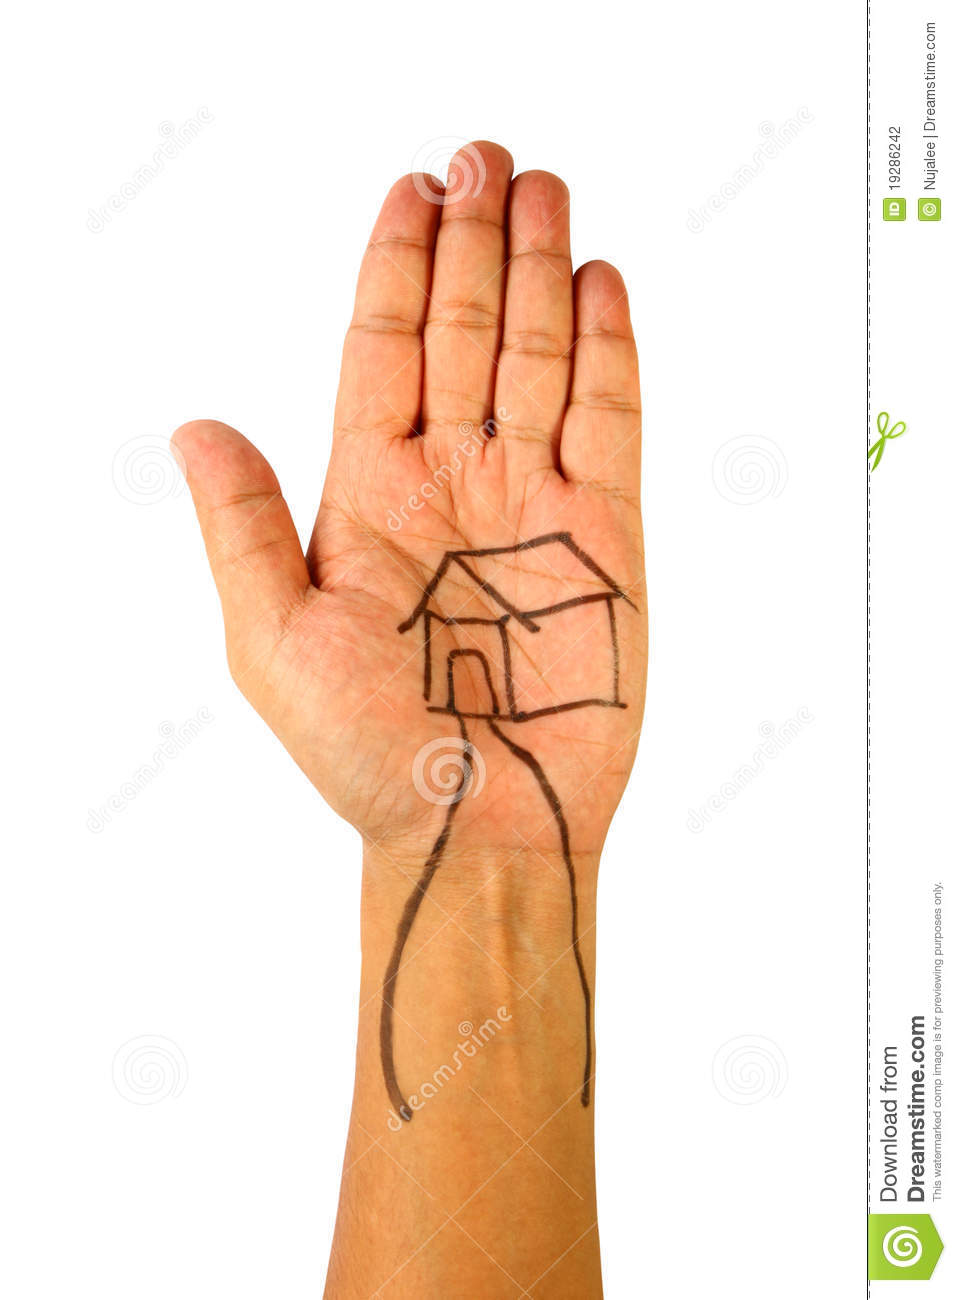 Drawing of house on hand